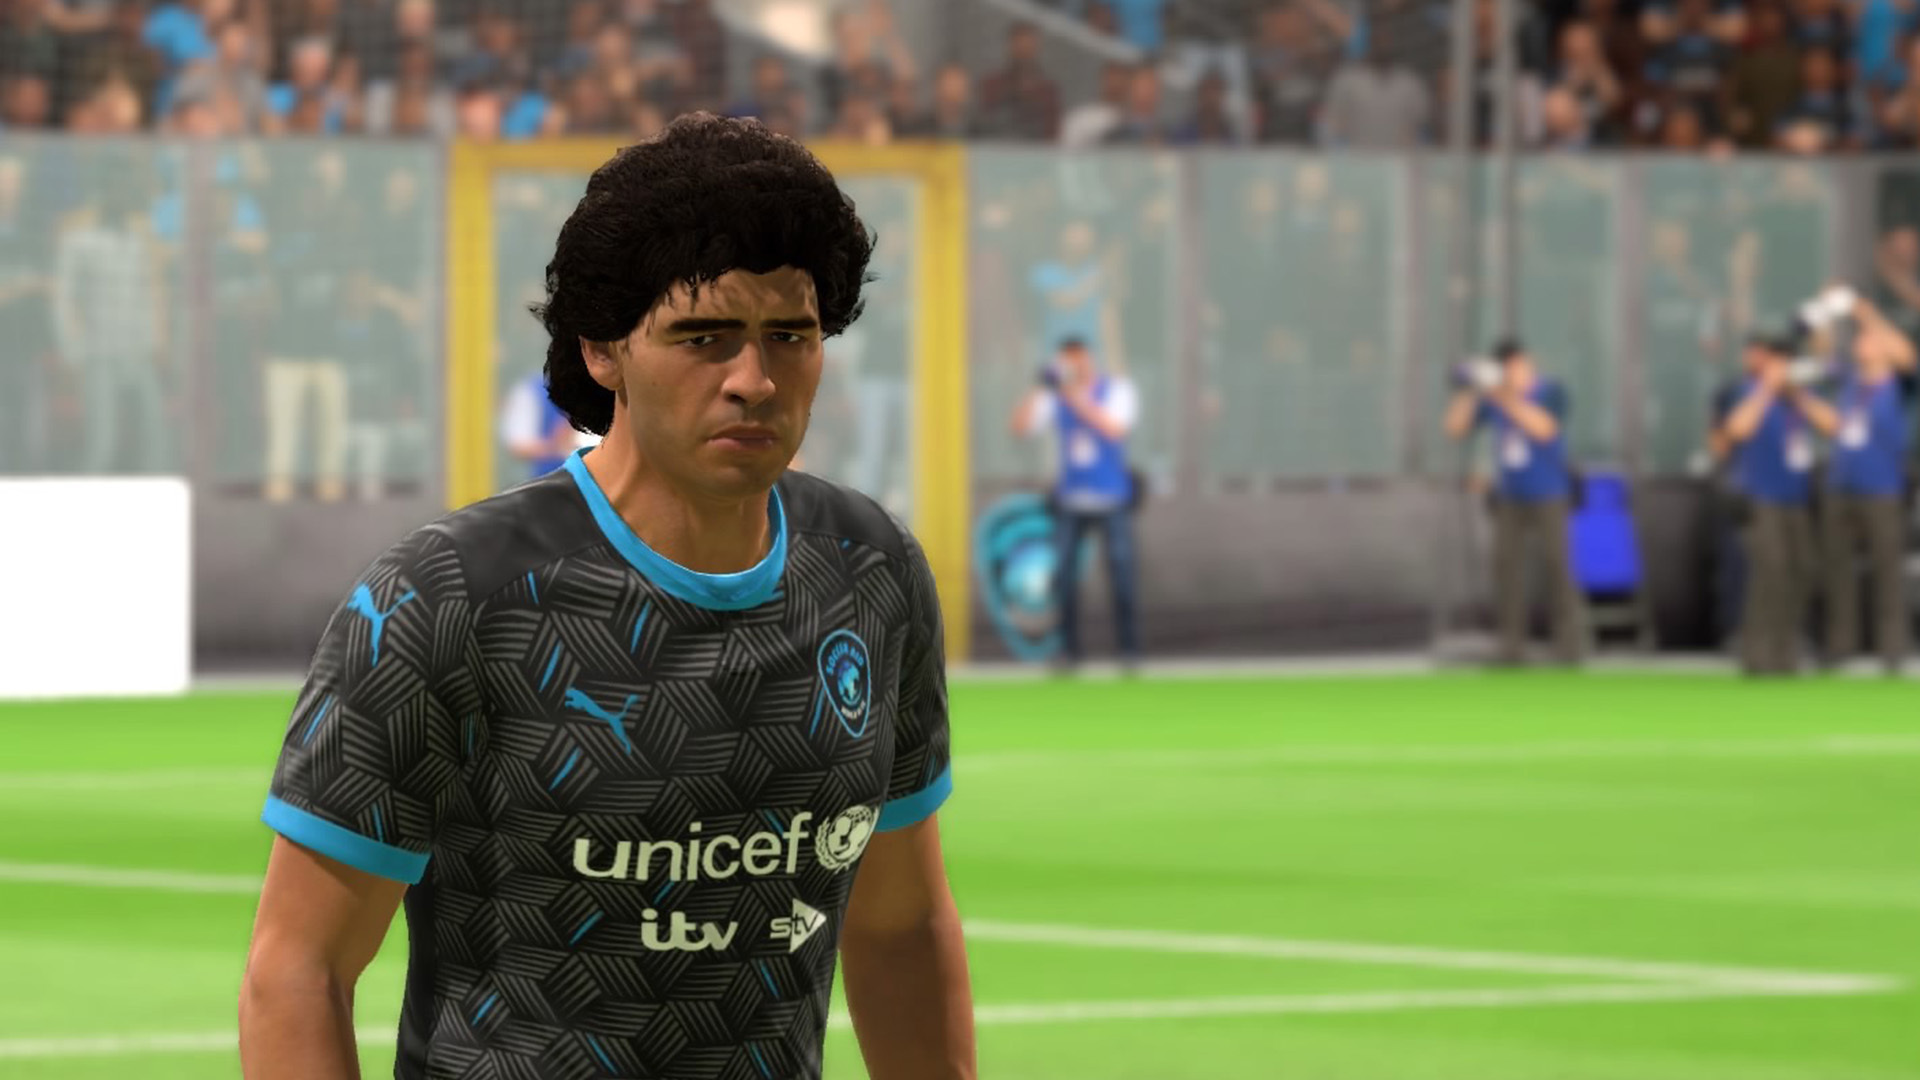 Soccer Aid World Xi Playable On Fifa 20 Featuring Maradona Pele Ronaldinho Giggs And More Fourfourtwo